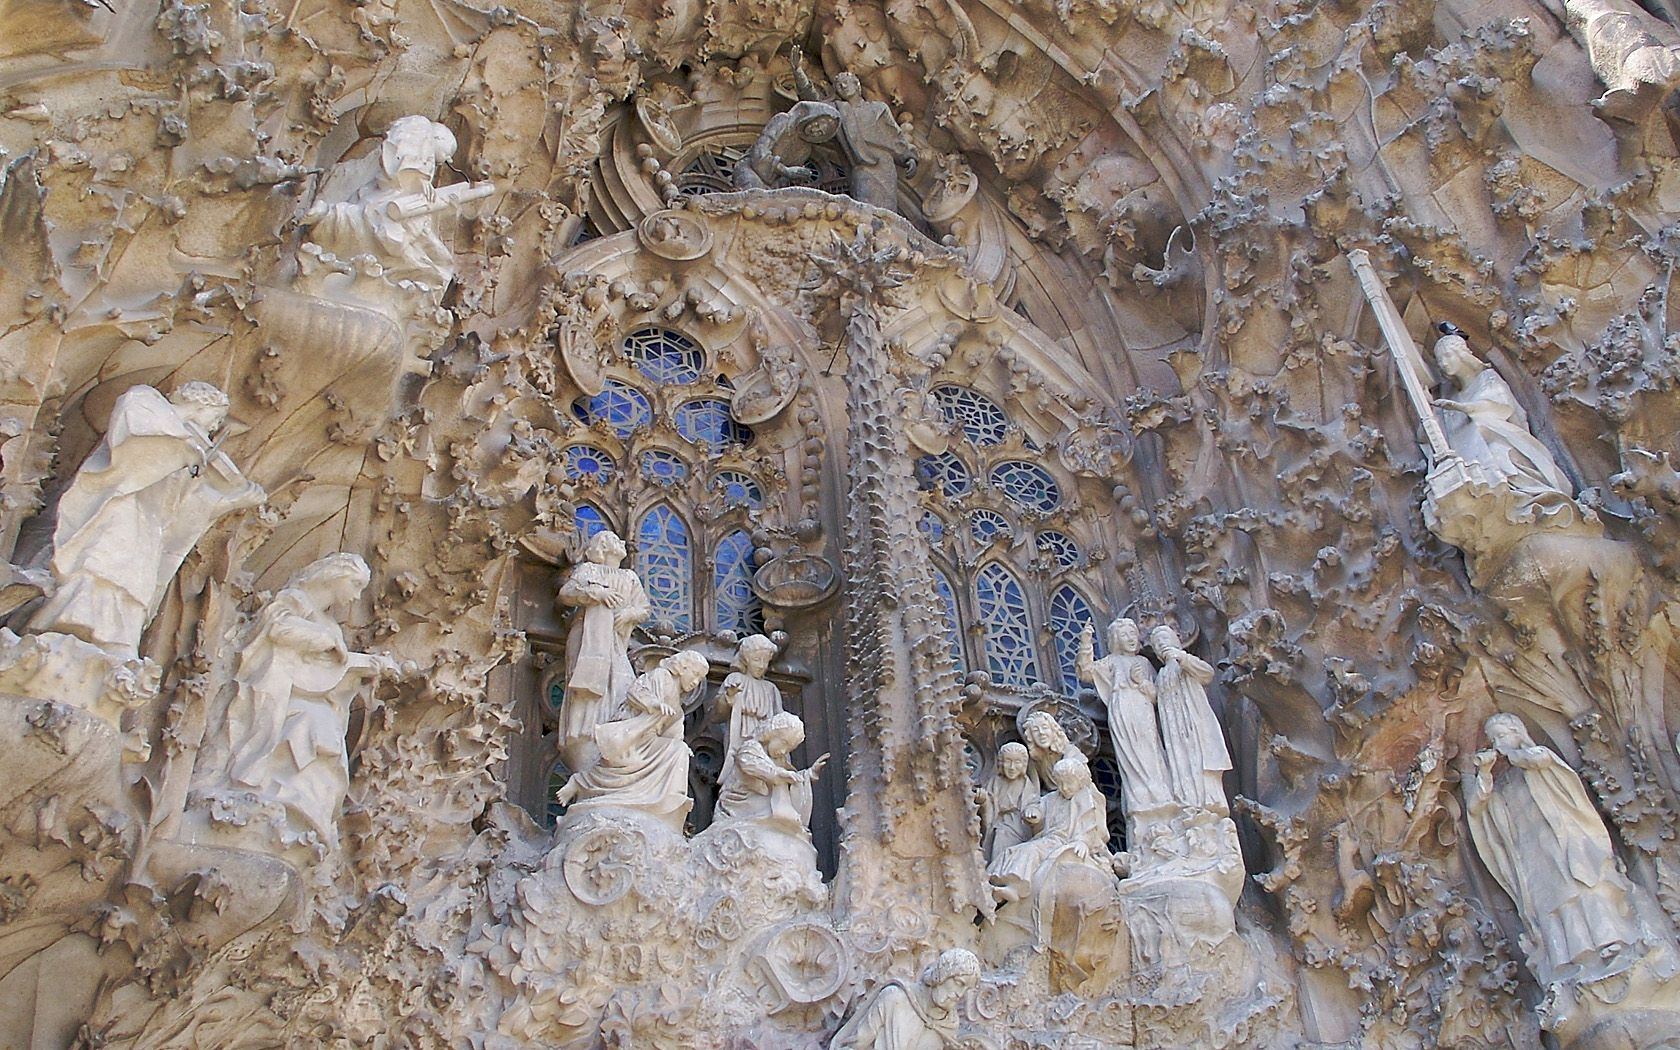 Detail from La Sagrada Familia